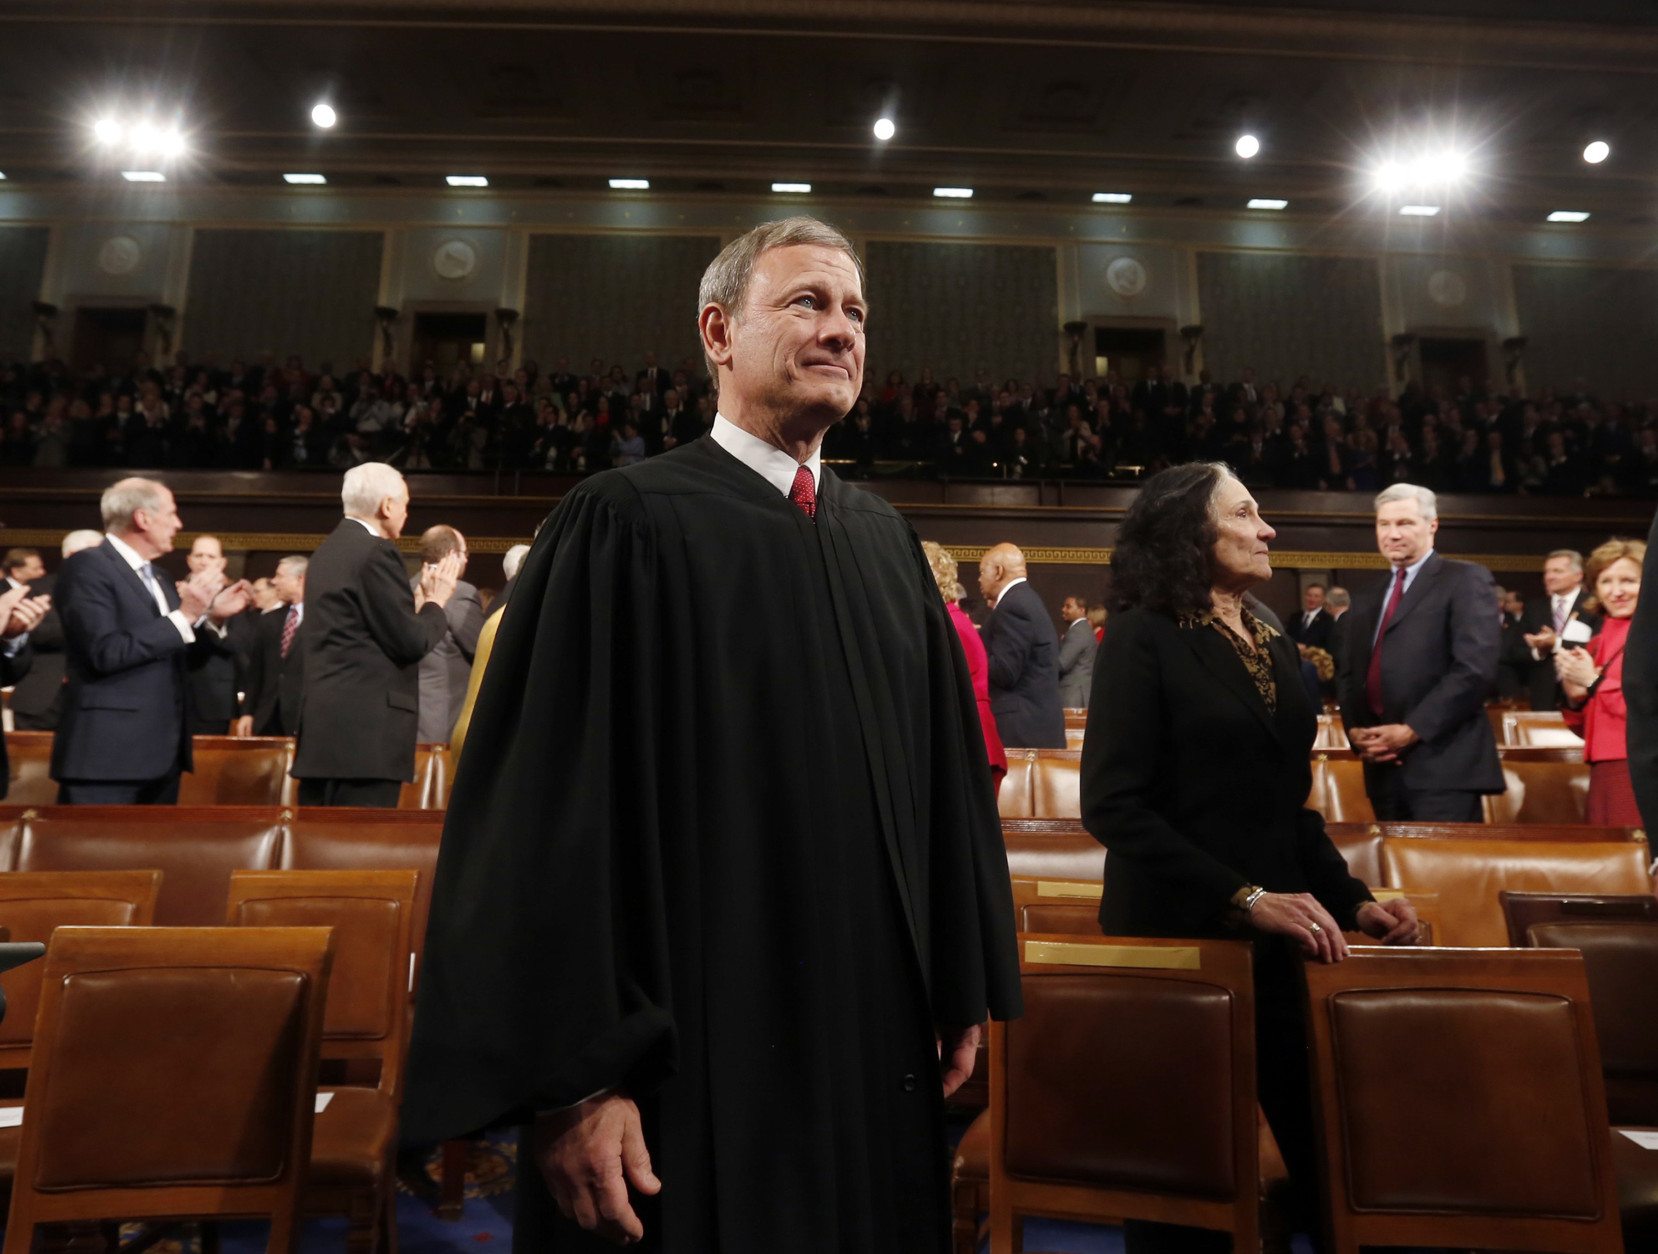 On this date in 2005, John Roberts' nomination as U.S. chief justice cleared the Senate Judiciary Committee on a bipartisan vote of 13-5.  (AP Photo/Larry Downing, Pool)